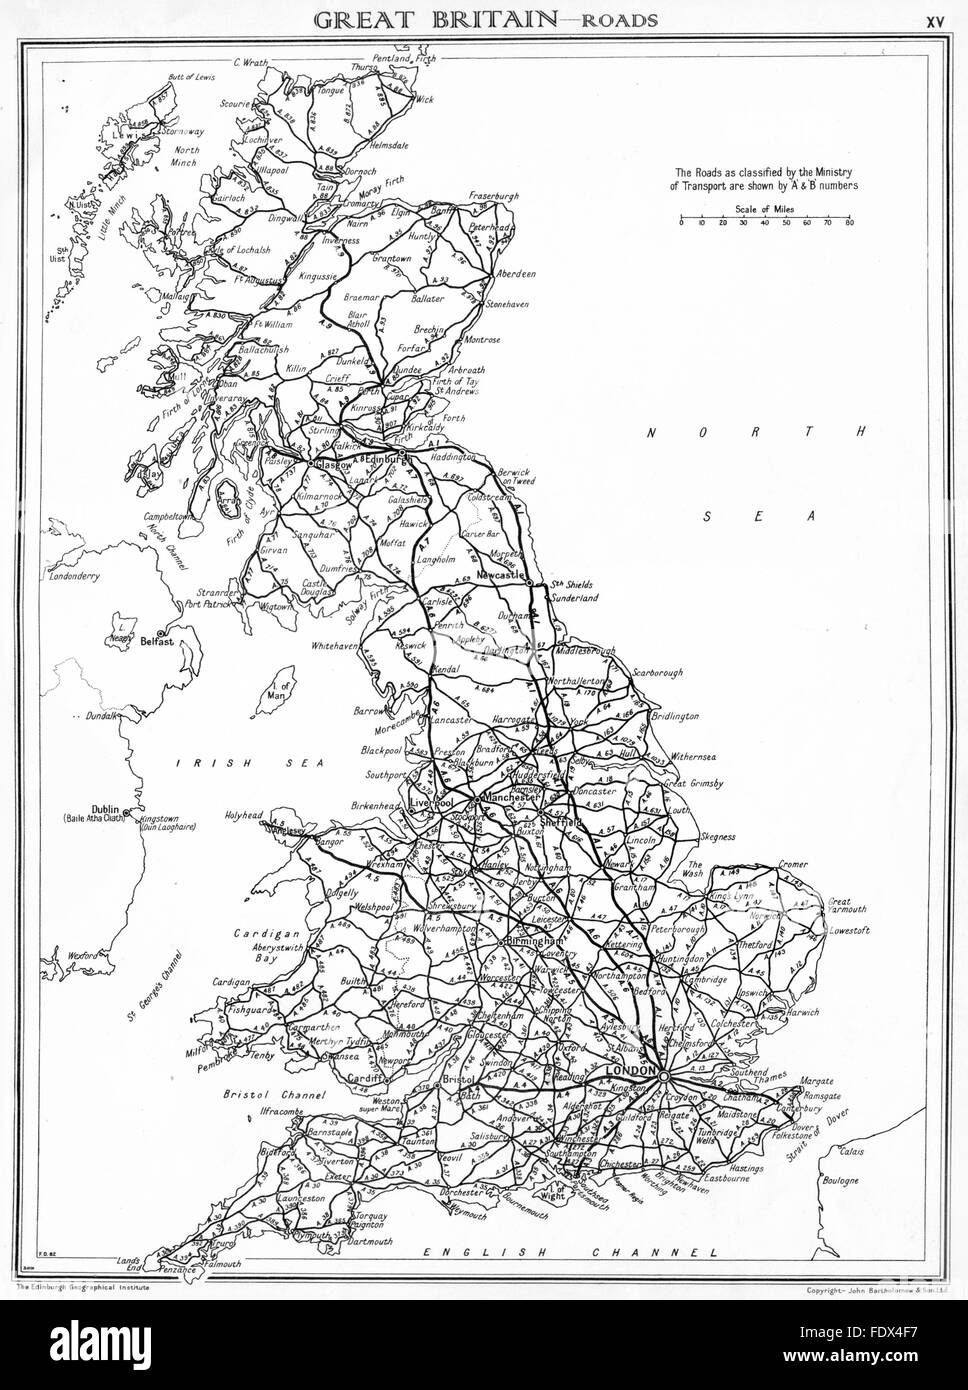 Map Of Uk Black And White.Great Britain Map Black And White Stock Photos Images Alamy